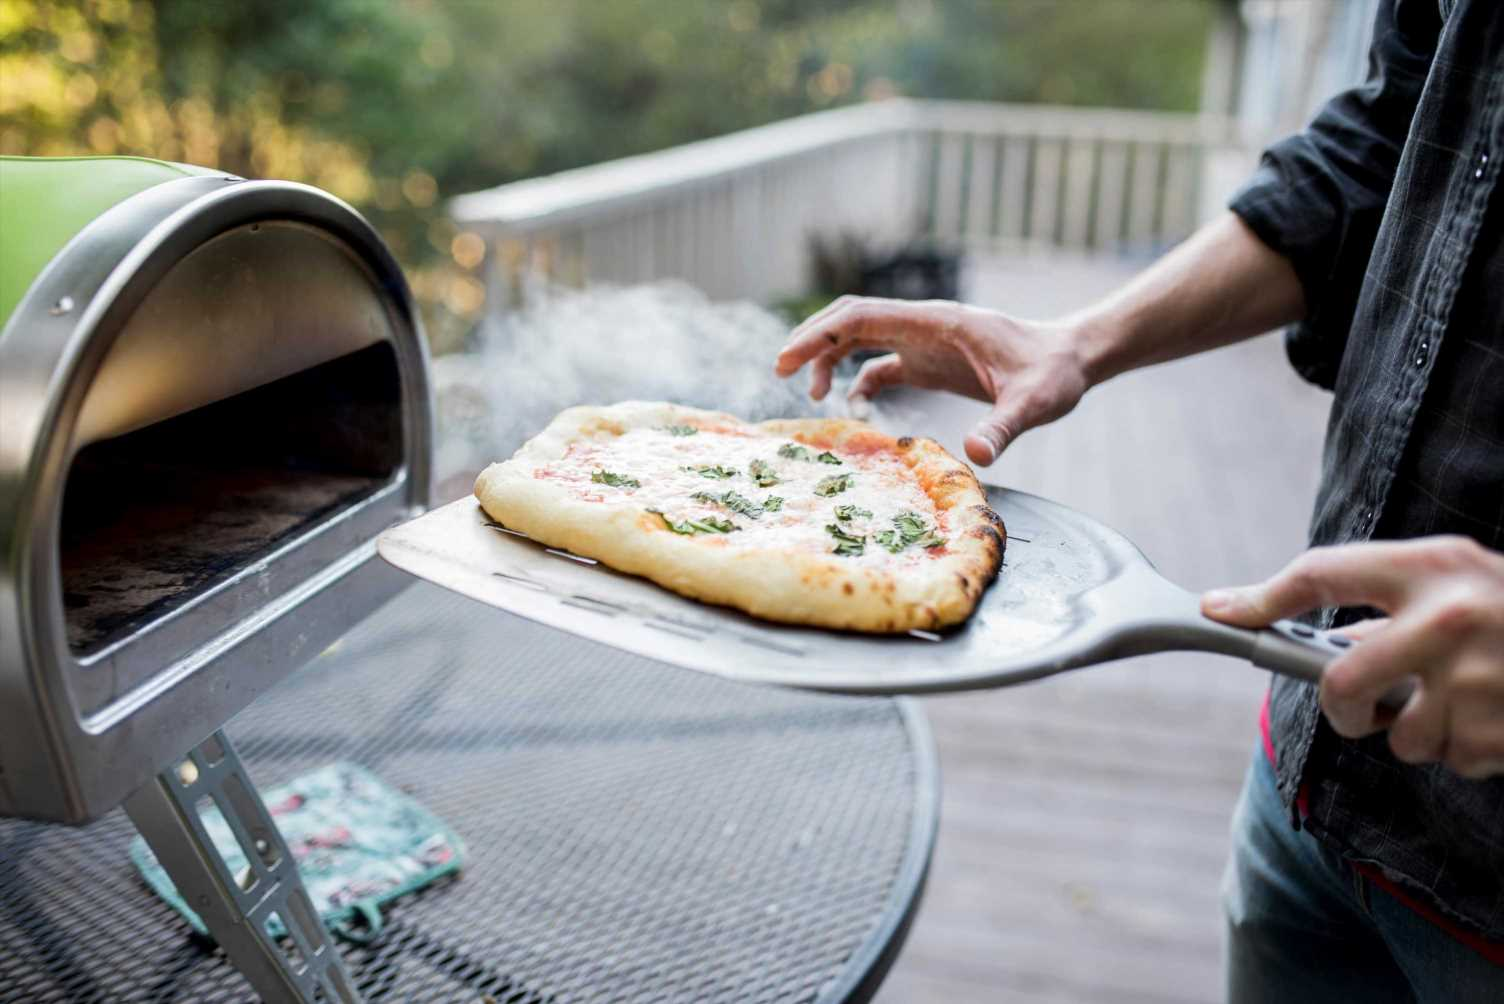 11 Best Pizza Ovens to Buy in 2021 | The Sun UK